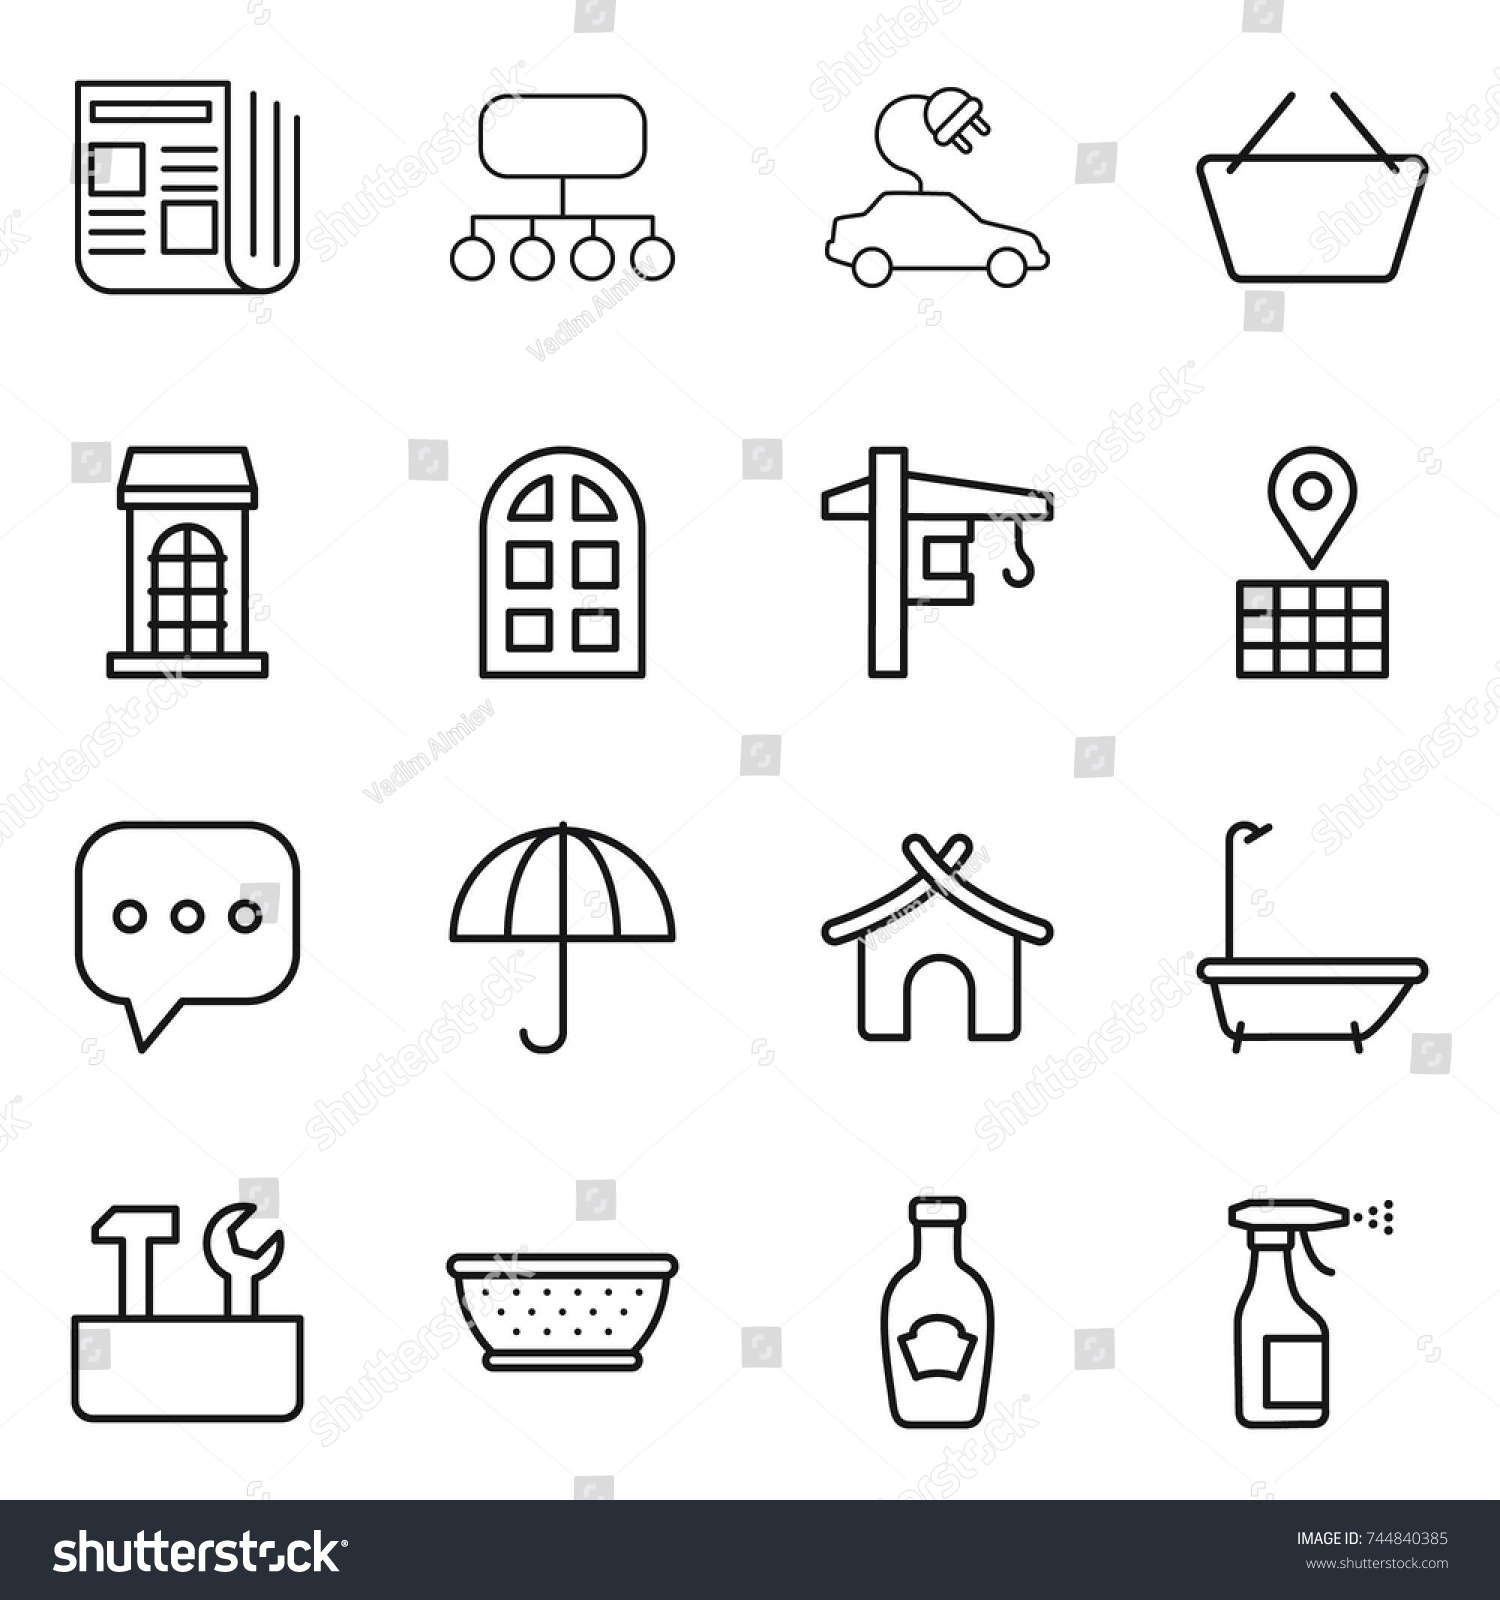 Thin Line Icon Set Newspaper Structure Stock Vector Royalty Free Electric Car Window Diagram Basket Building